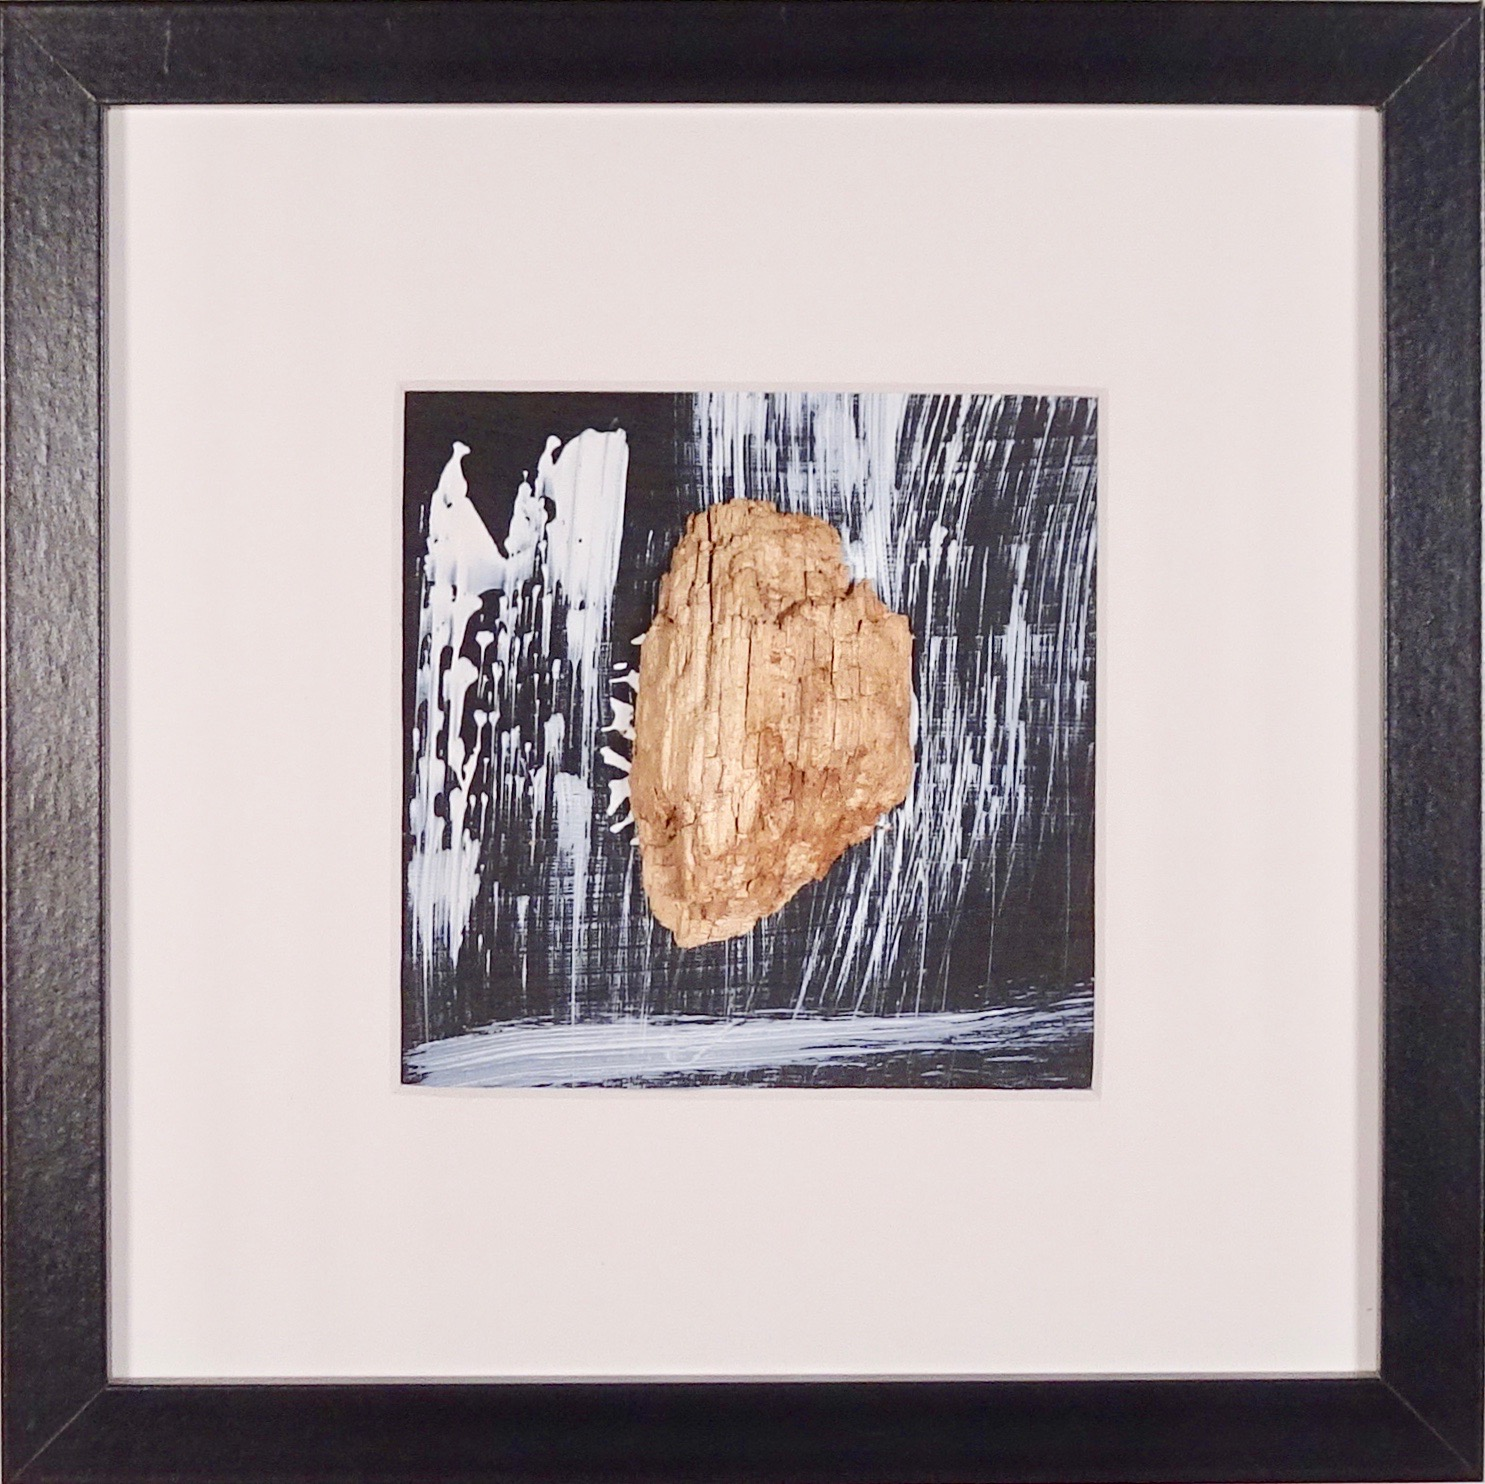 NAUFRAGIO #8 - Beached wood, acrylic, sea water on cardboard, 25x25cmm with passe-partout frame - AVAILABLE